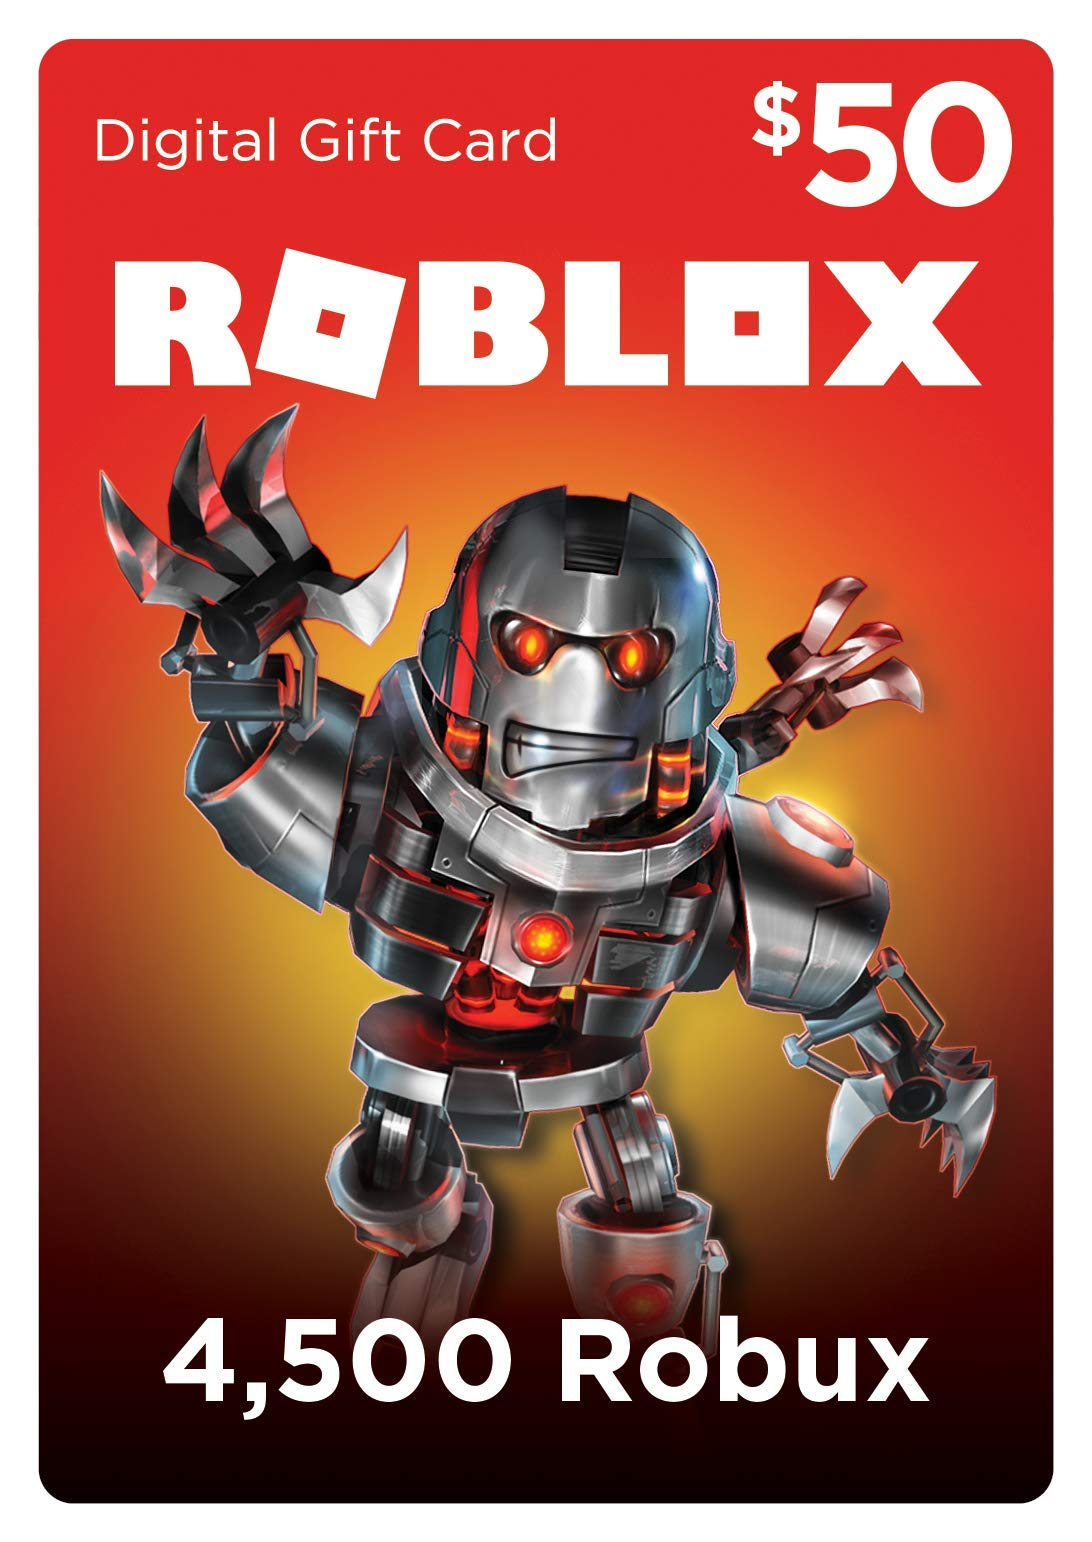 4,500 Robux for Roblox [Online Game Code] by Roblox